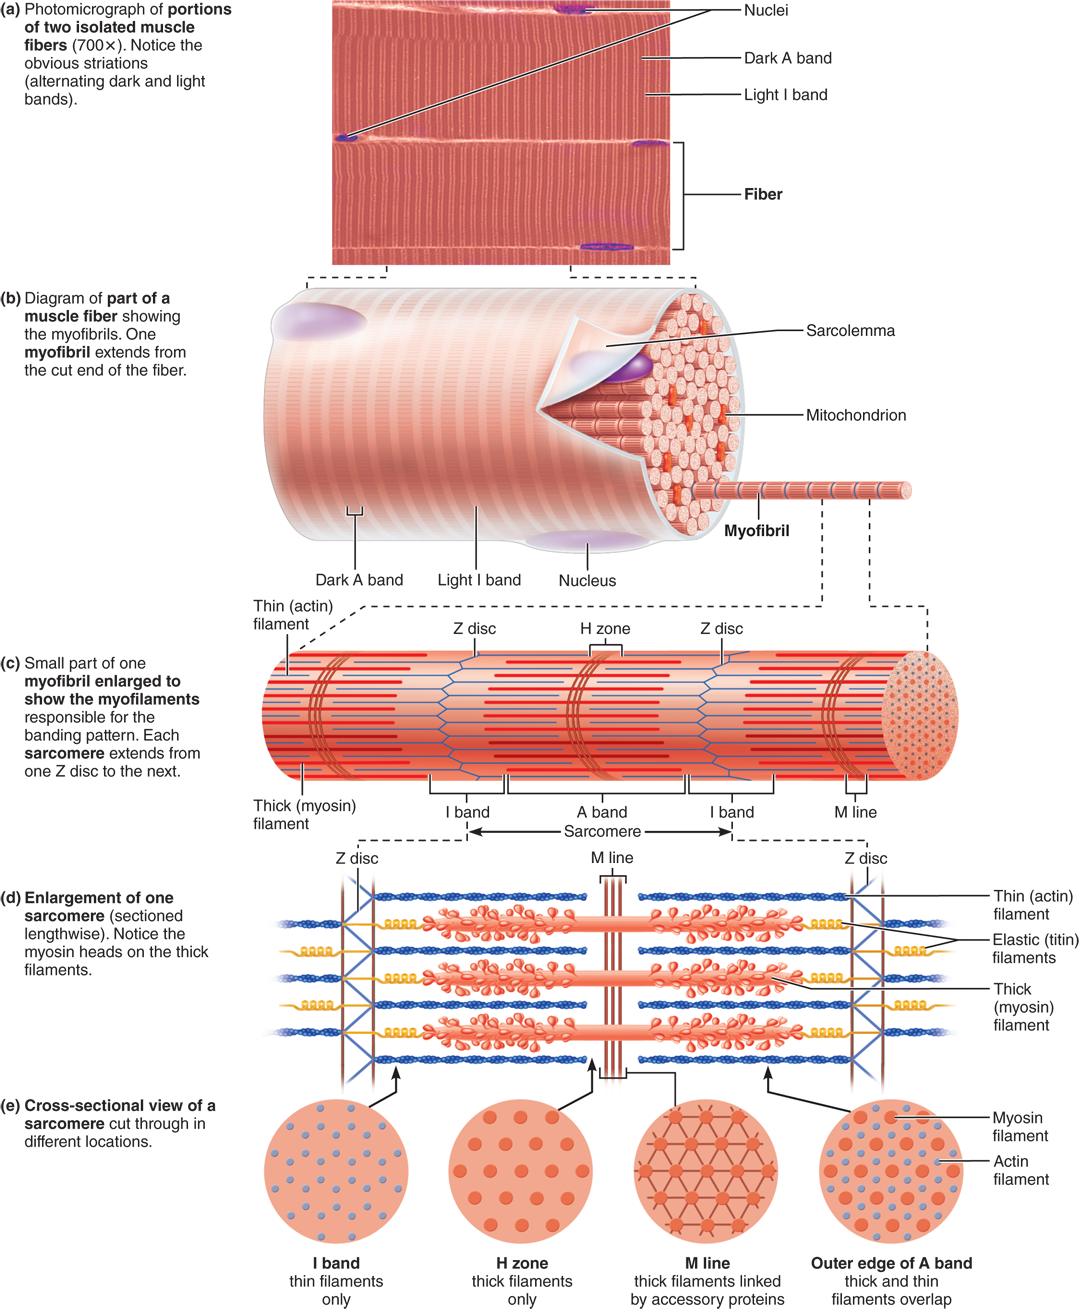 9.3 Skeletal muscle fibers contain calcium-regulated molecular ...